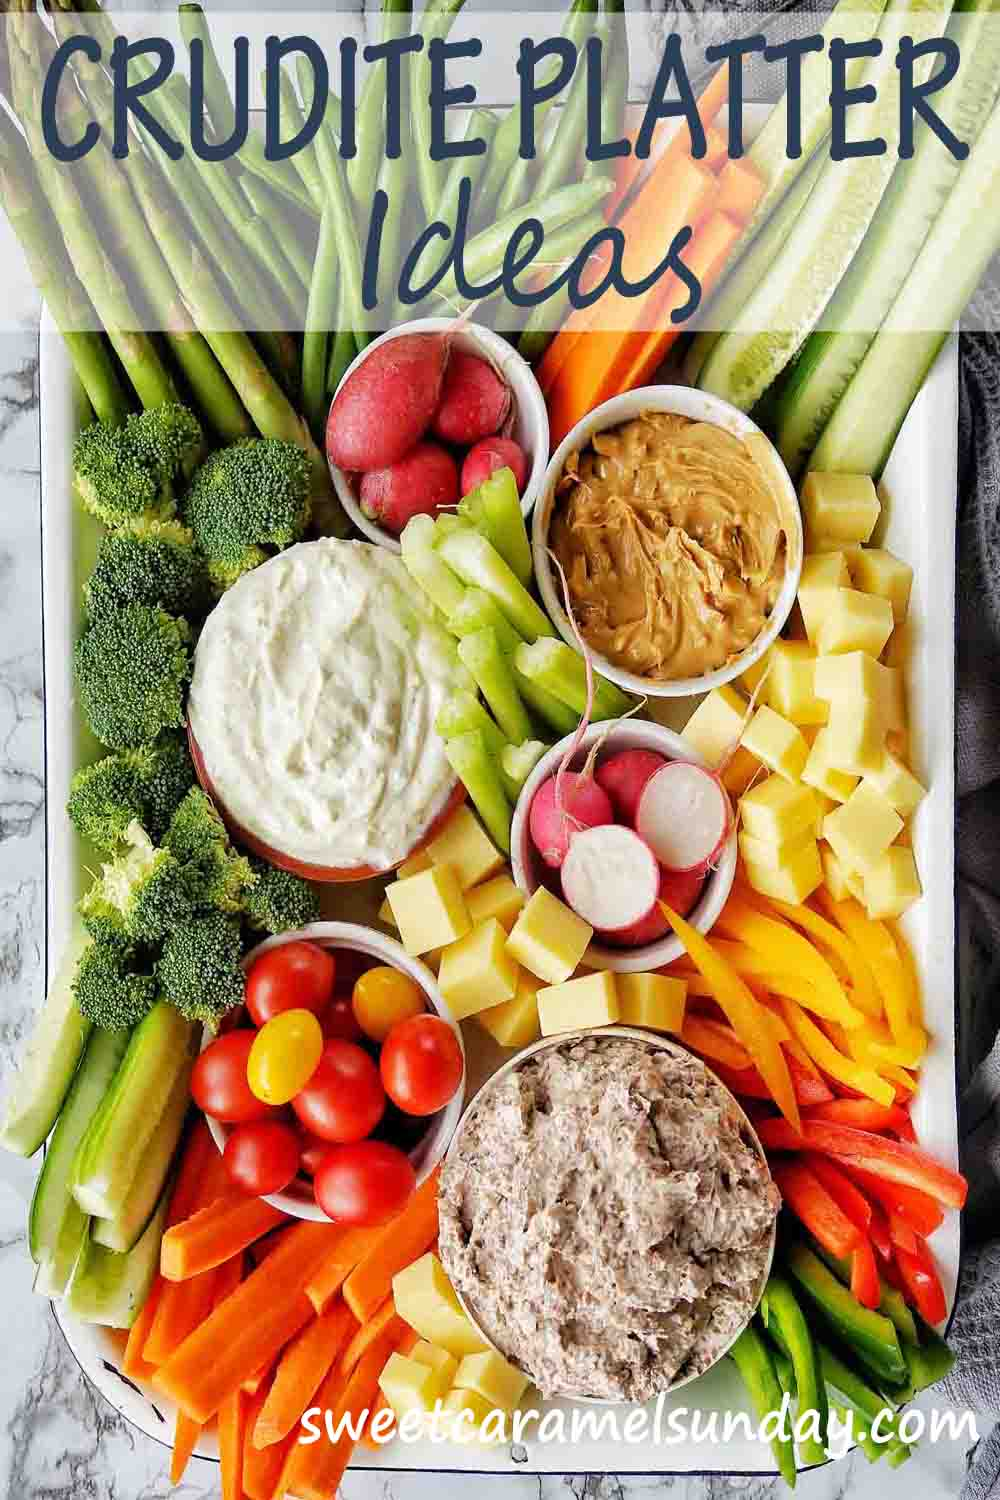 Crudite Platter ideas with text label